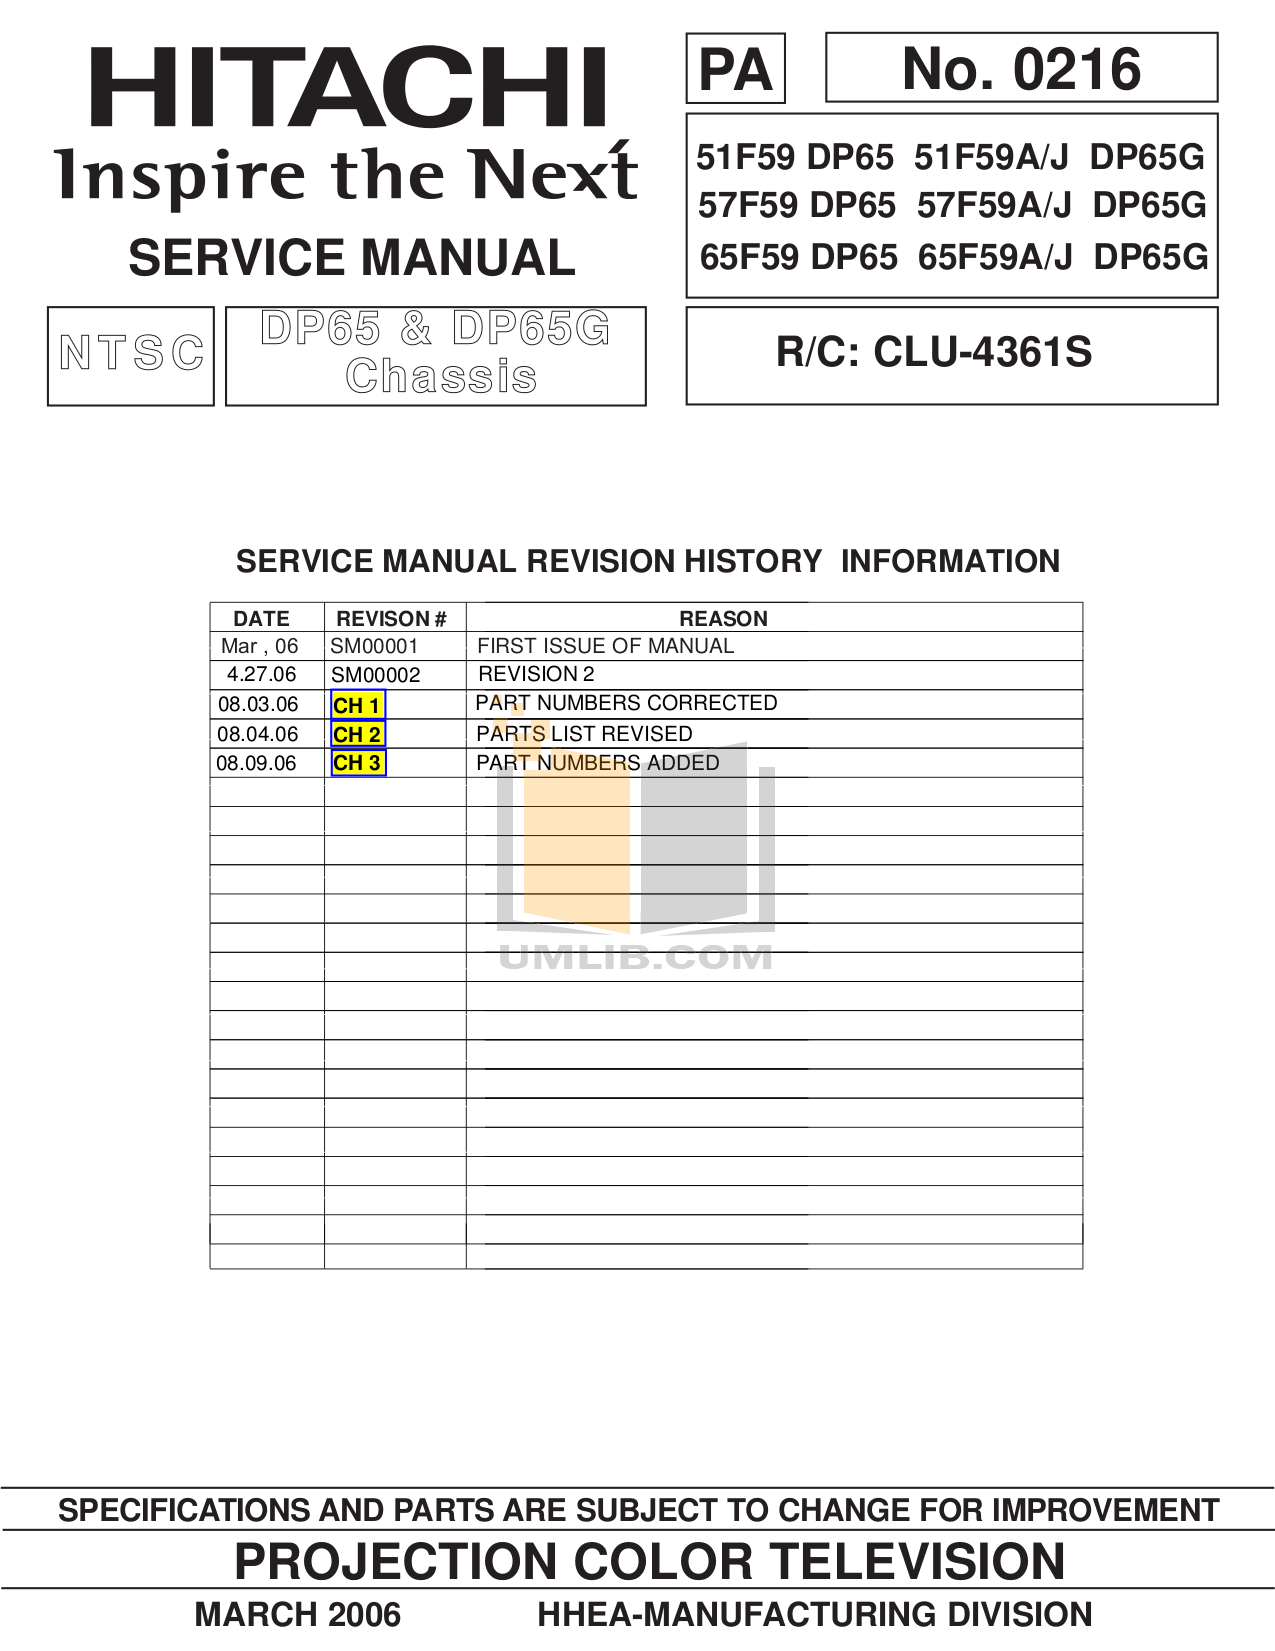 pdf for Hitachi TV 57F59A manual